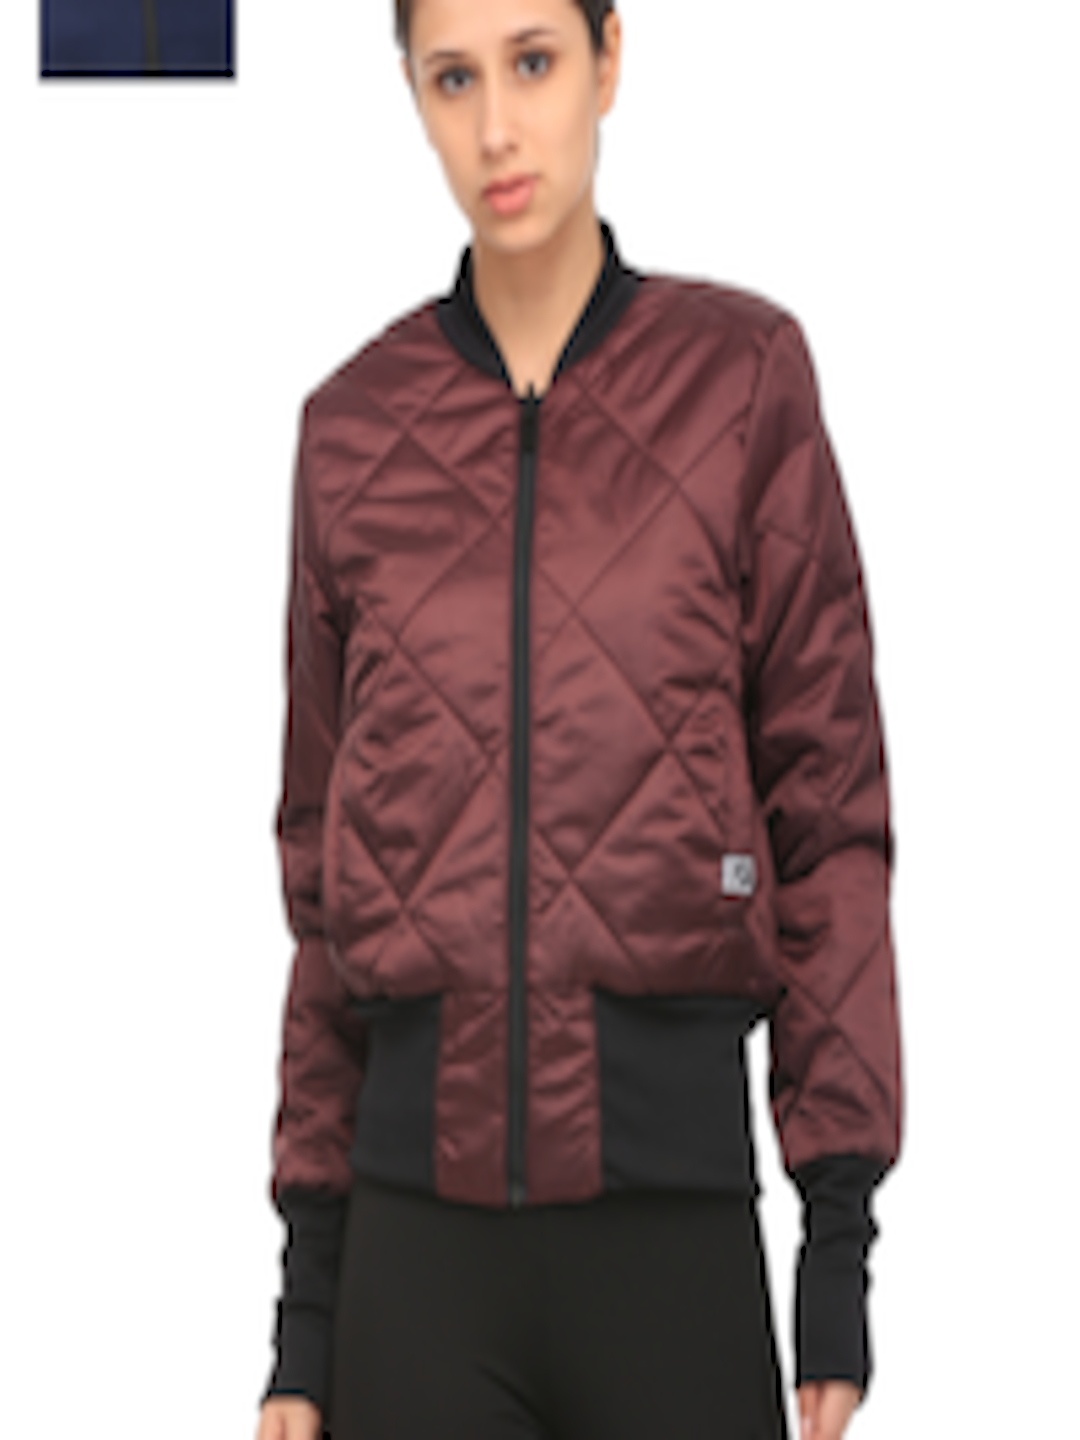 f65bbc2de78c Buy Puma Women Maroon   Navy Reversible Solid Padded Bomber Jacket - Jackets  for Women 1978491